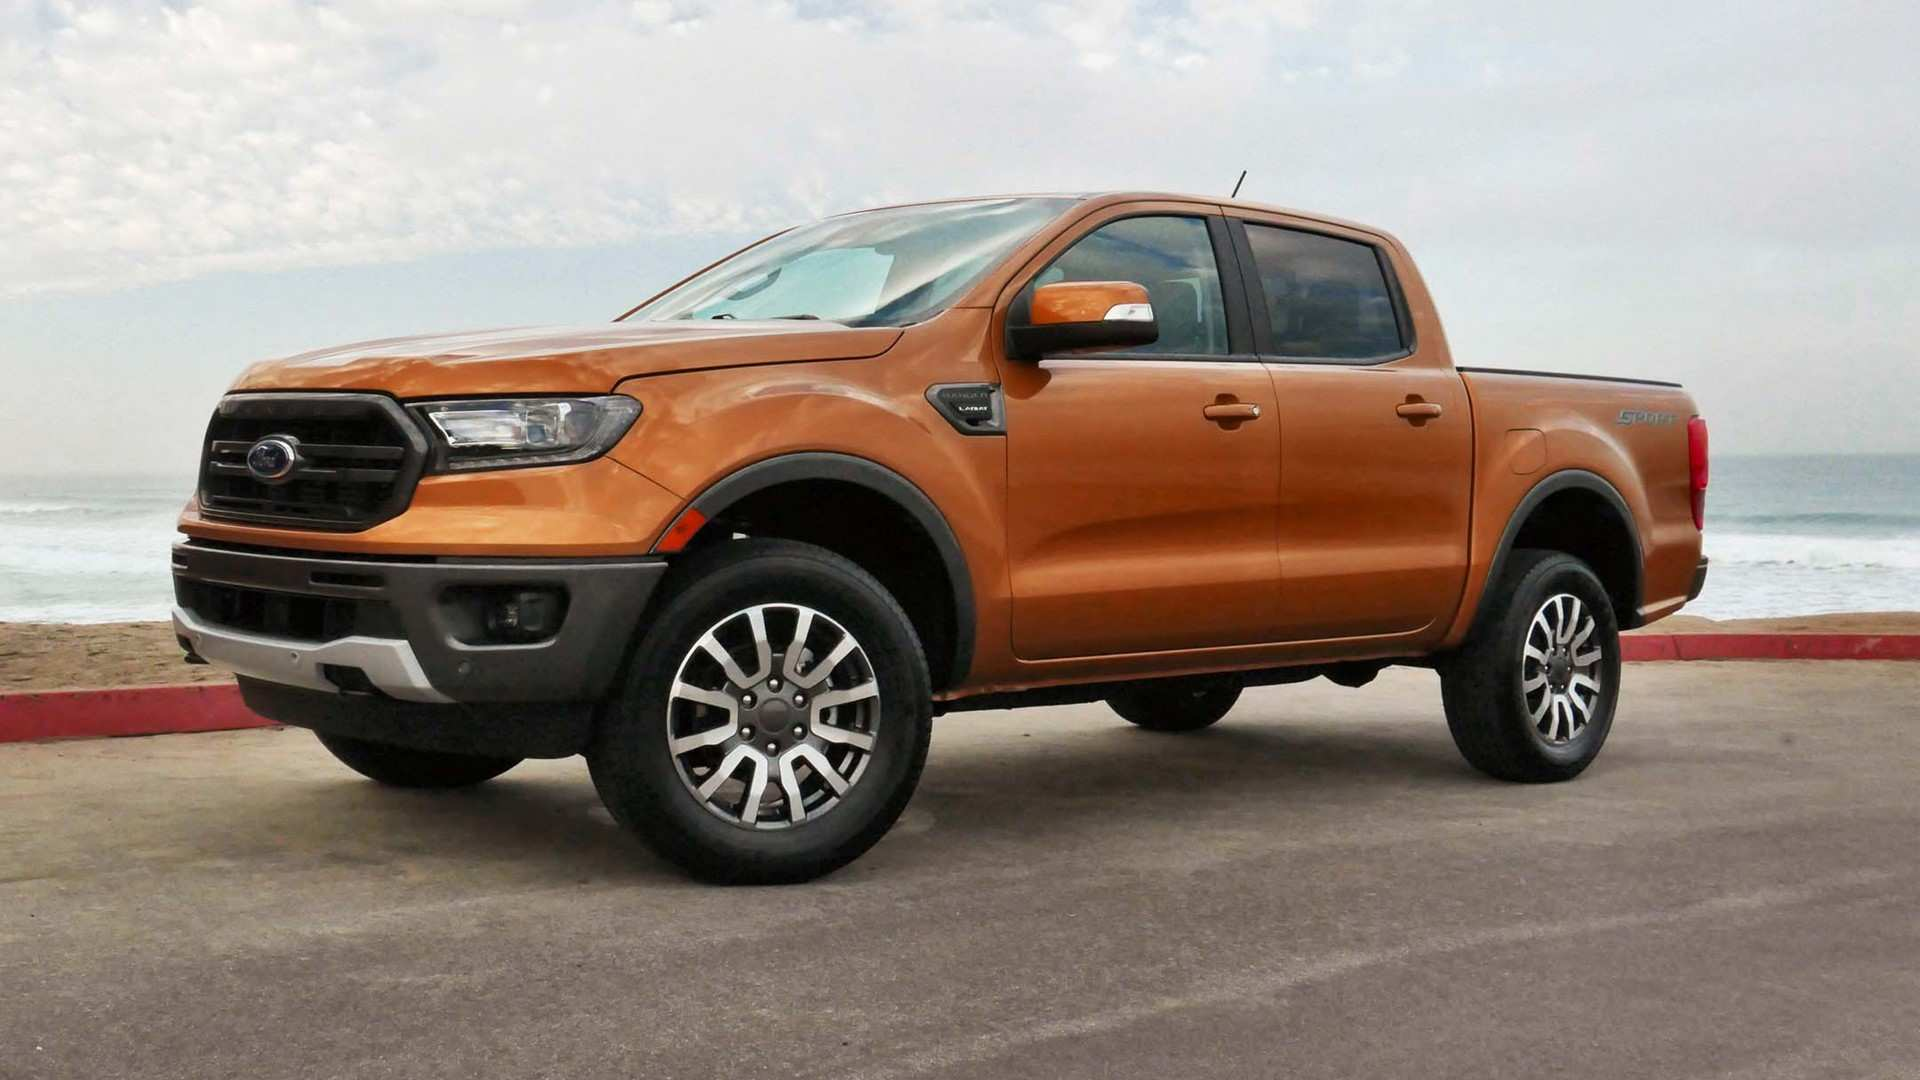 64 Great New Release Date Of 2019 Ford Ranger First Drive Price for New Release Date Of 2019 Ford Ranger First Drive